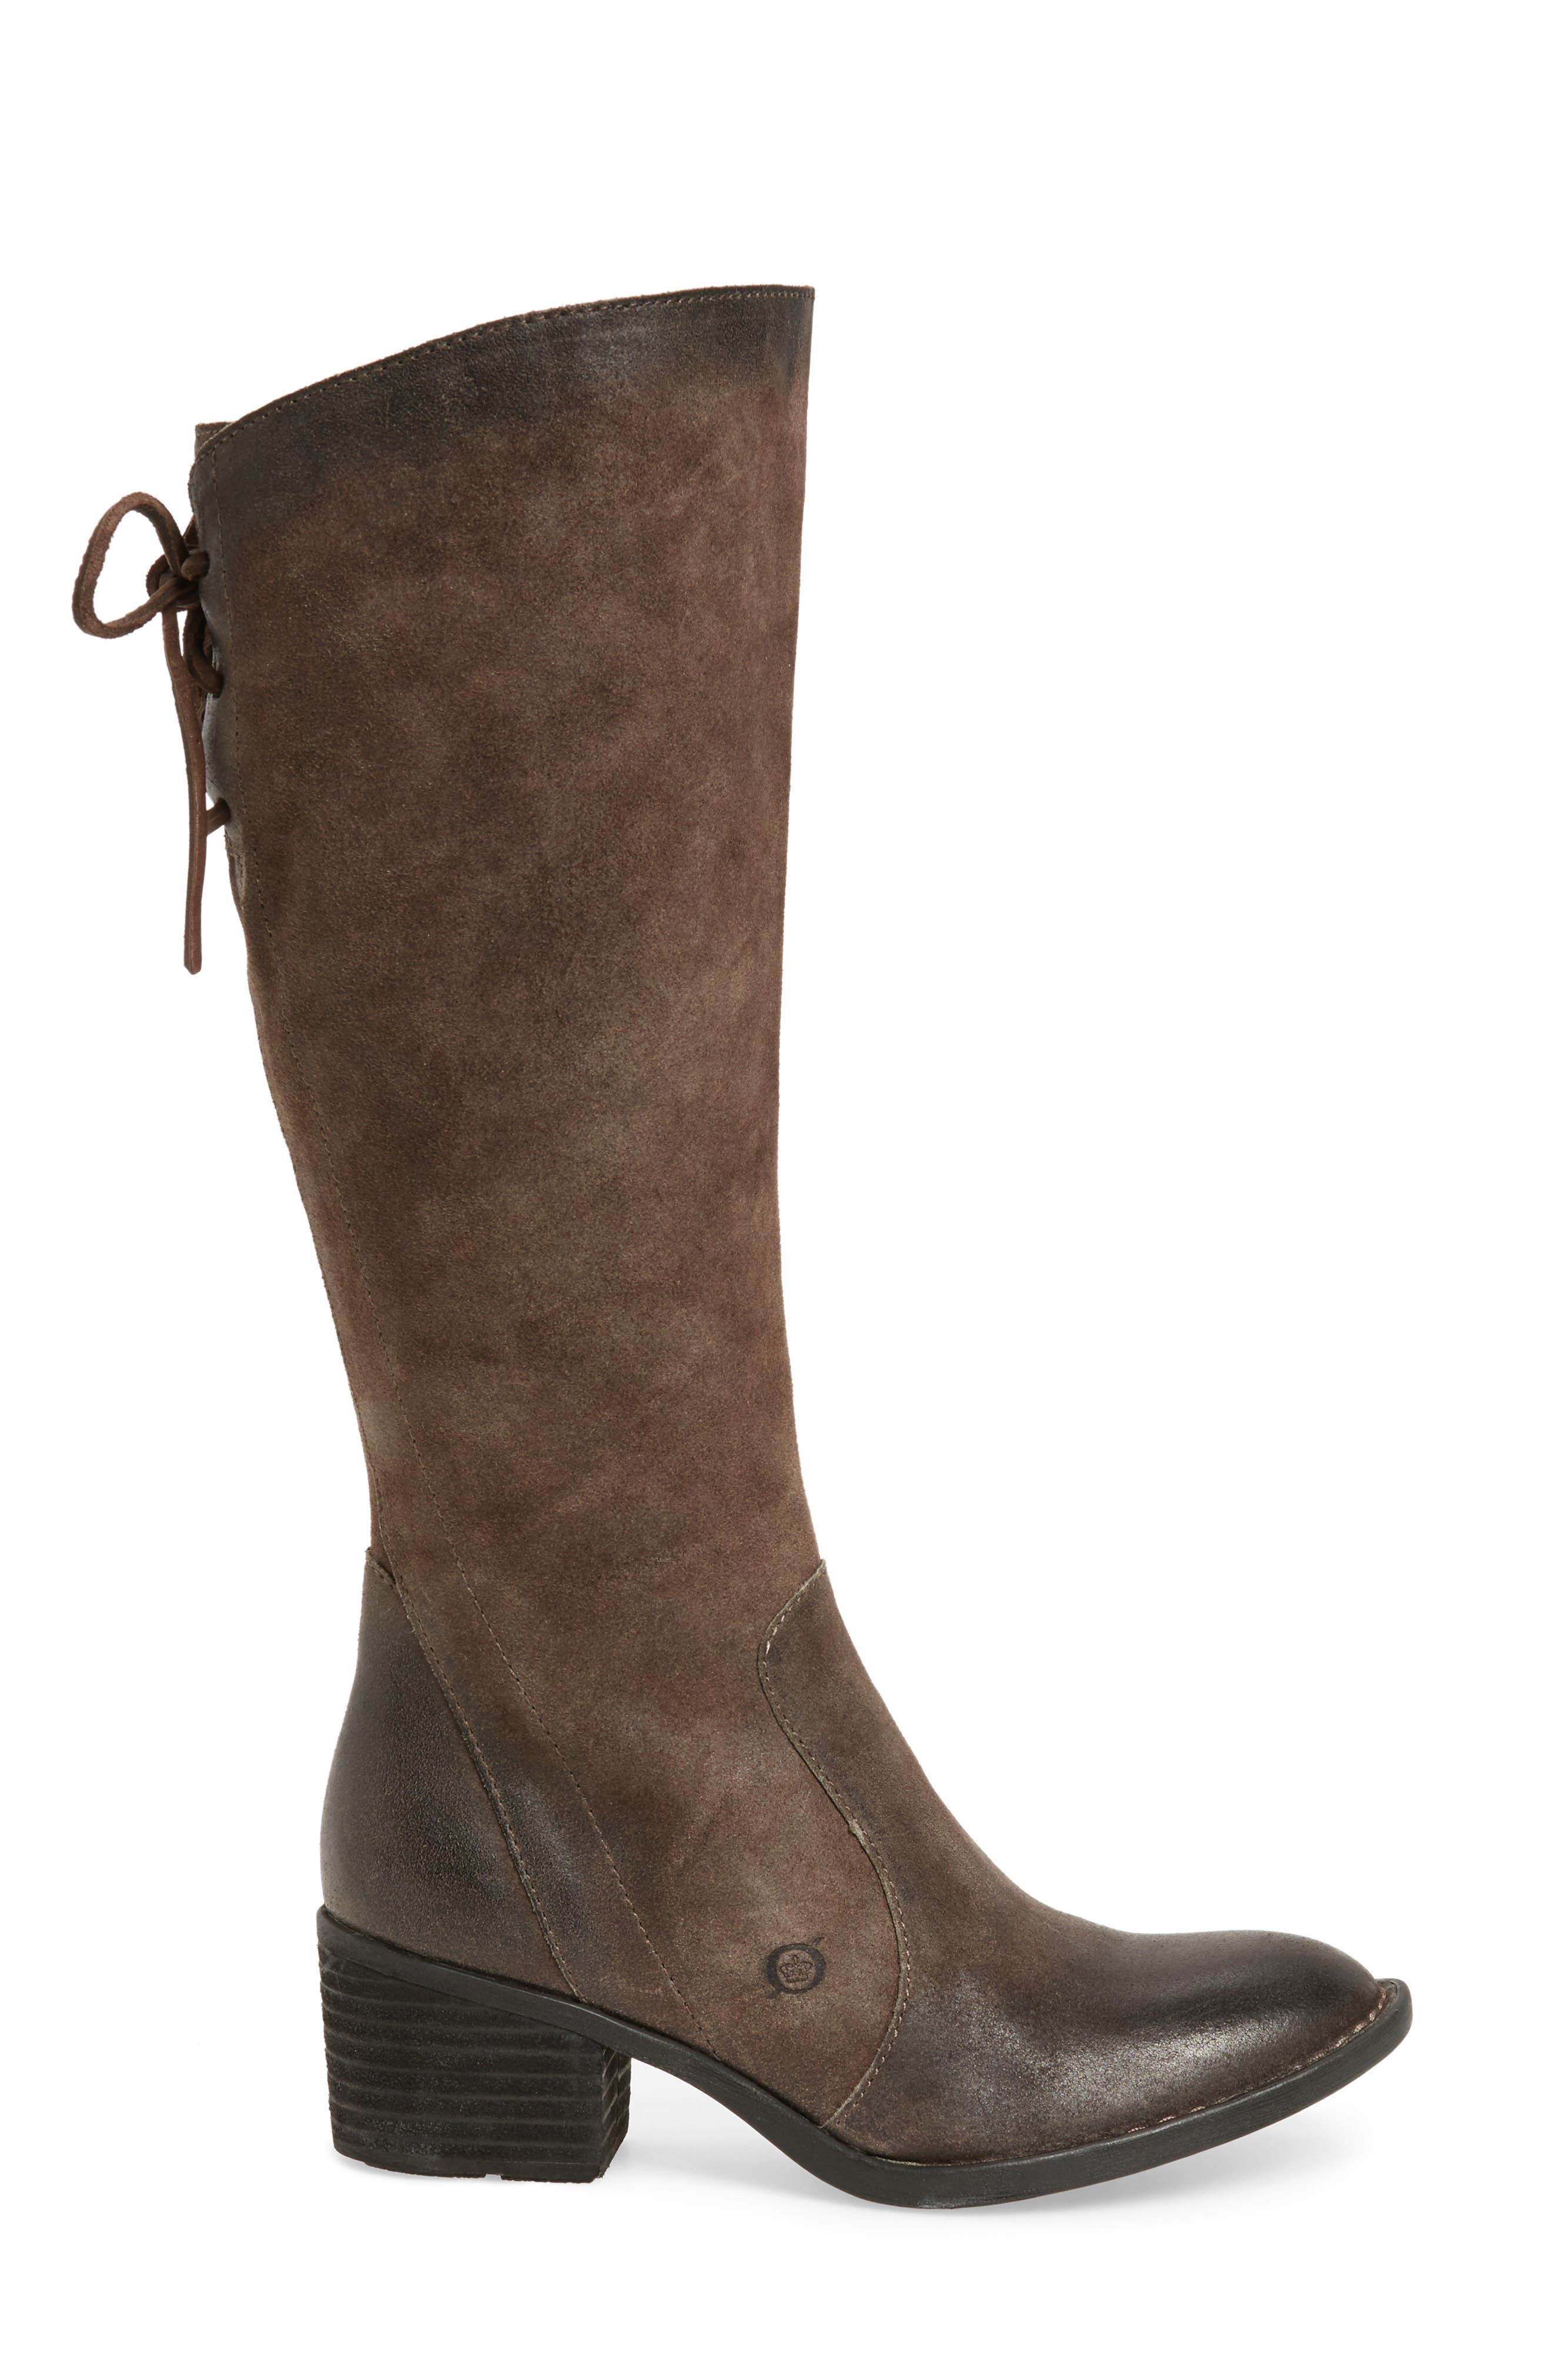 Felicia Knee High Boot,                             Alternate thumbnail 3, color,                             Grey Distressed Leather